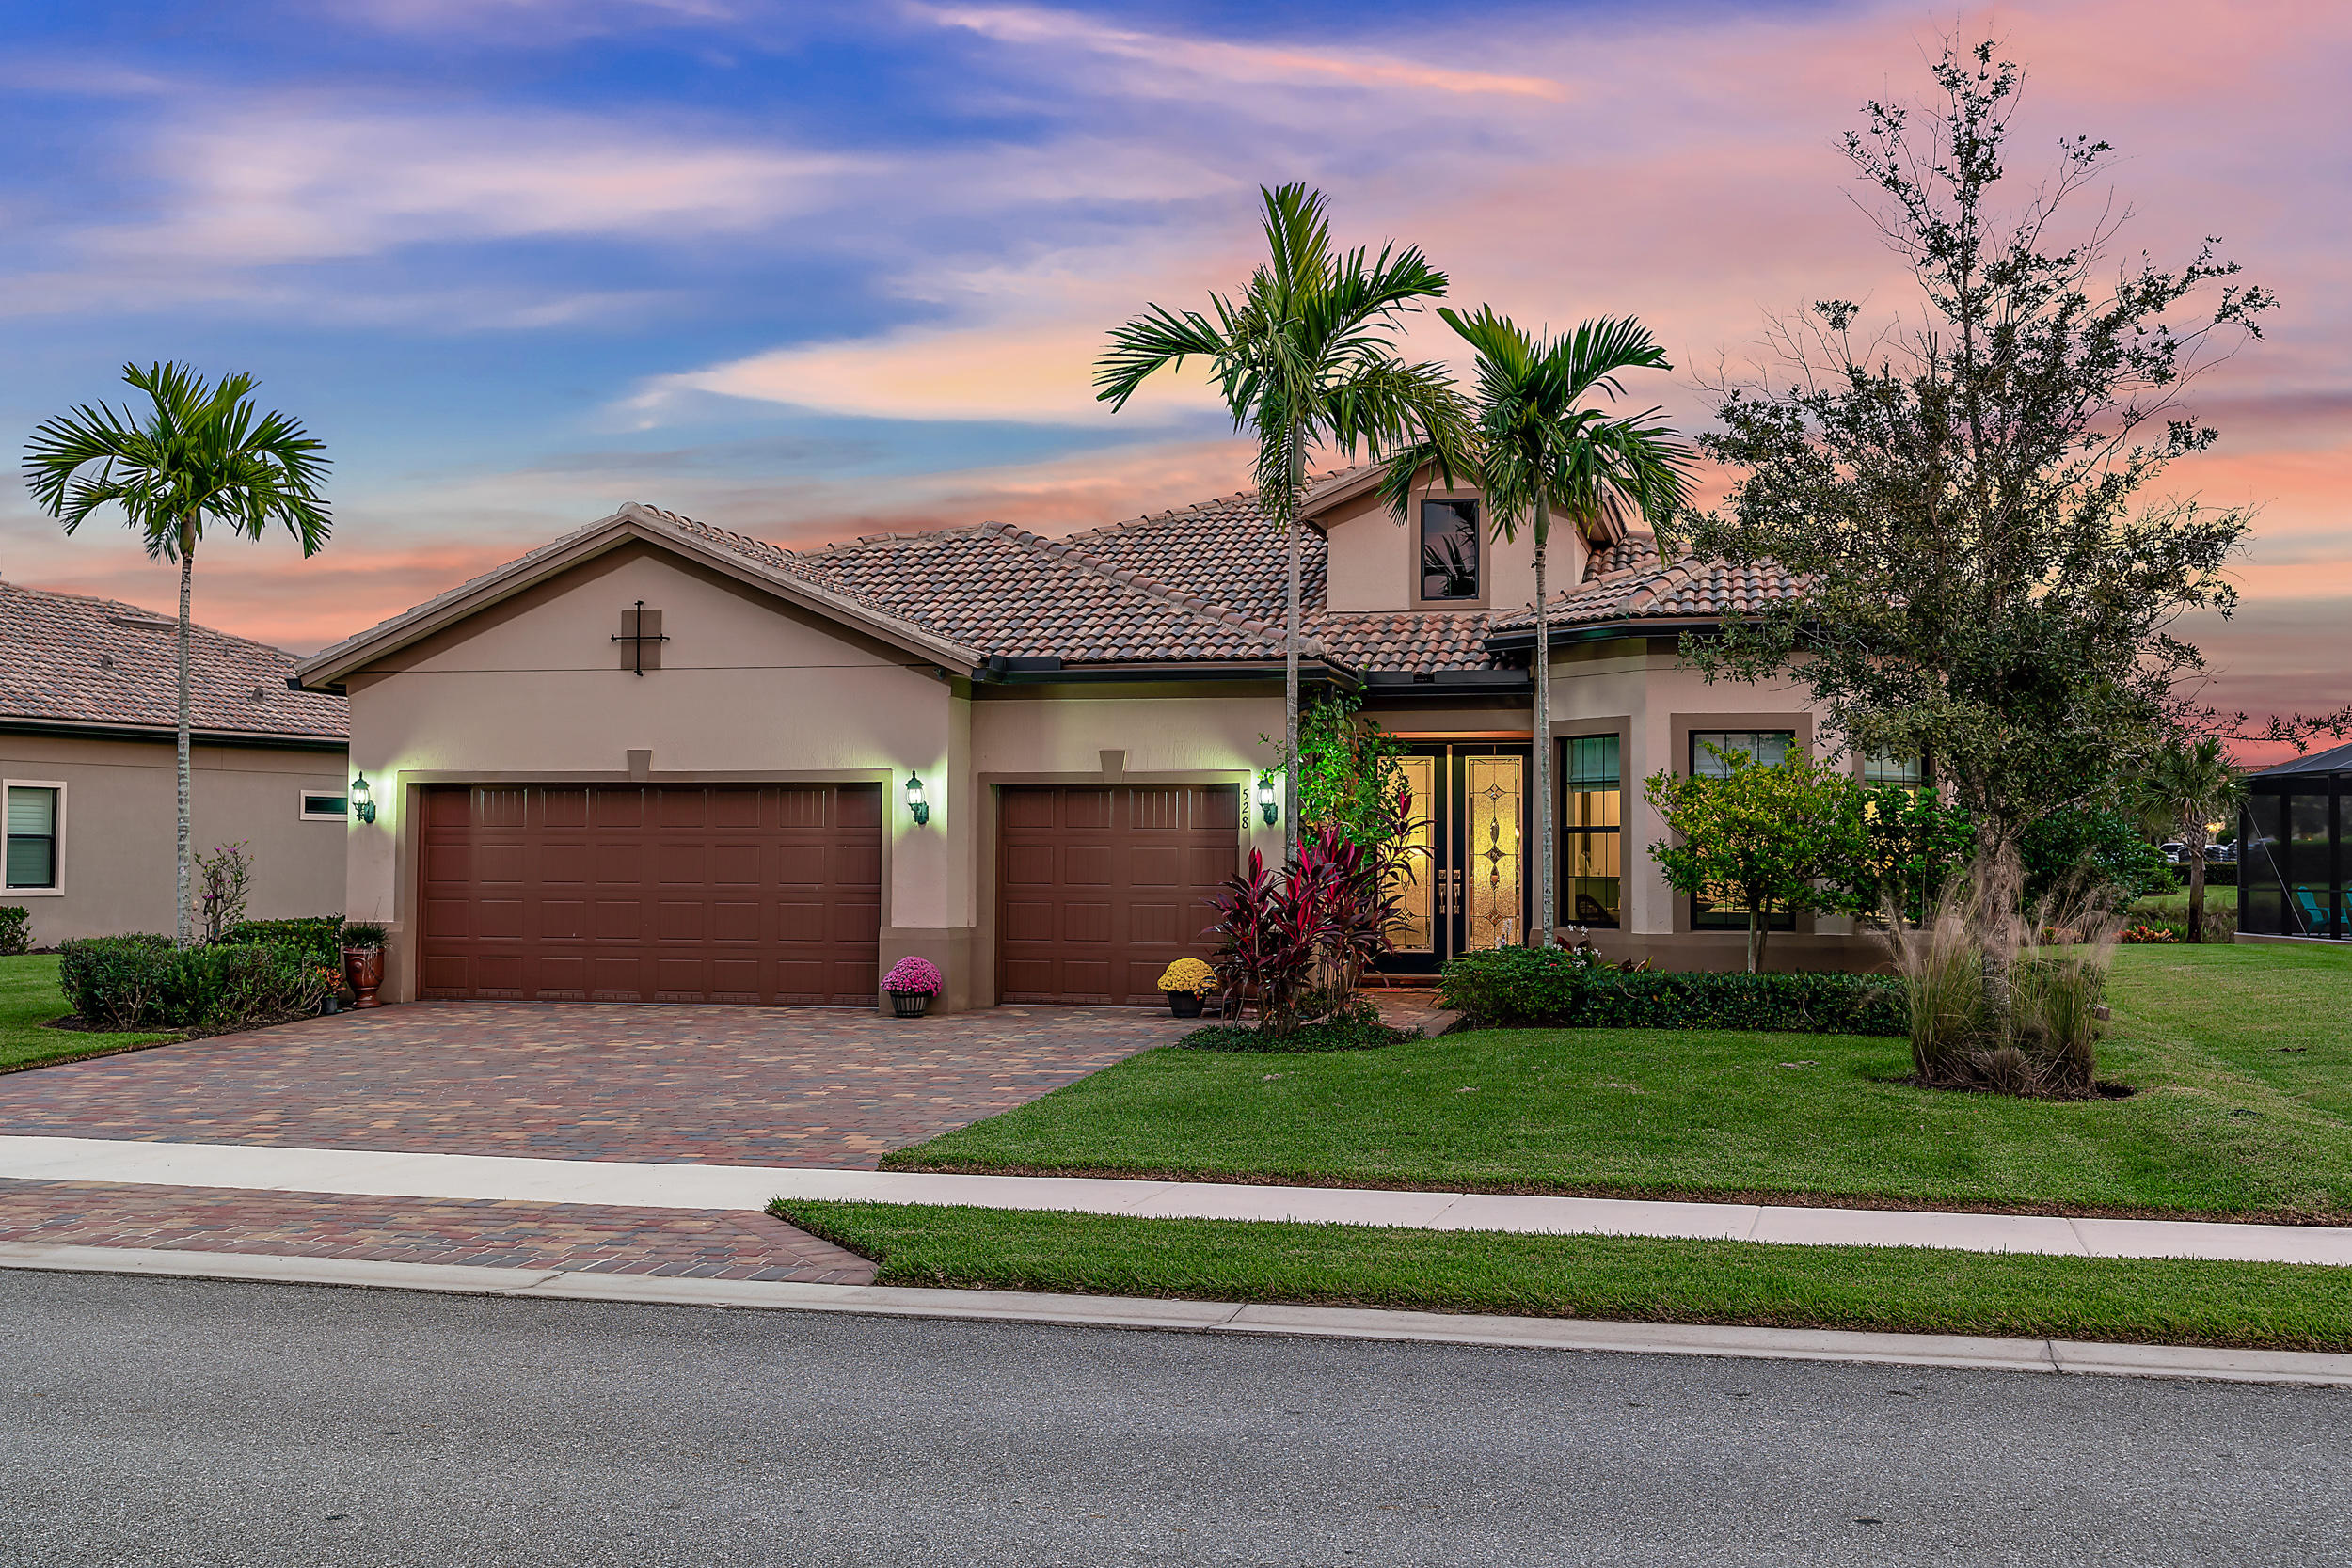 New Home for sale at 528 Sonoma Isles Circle in Jupiter